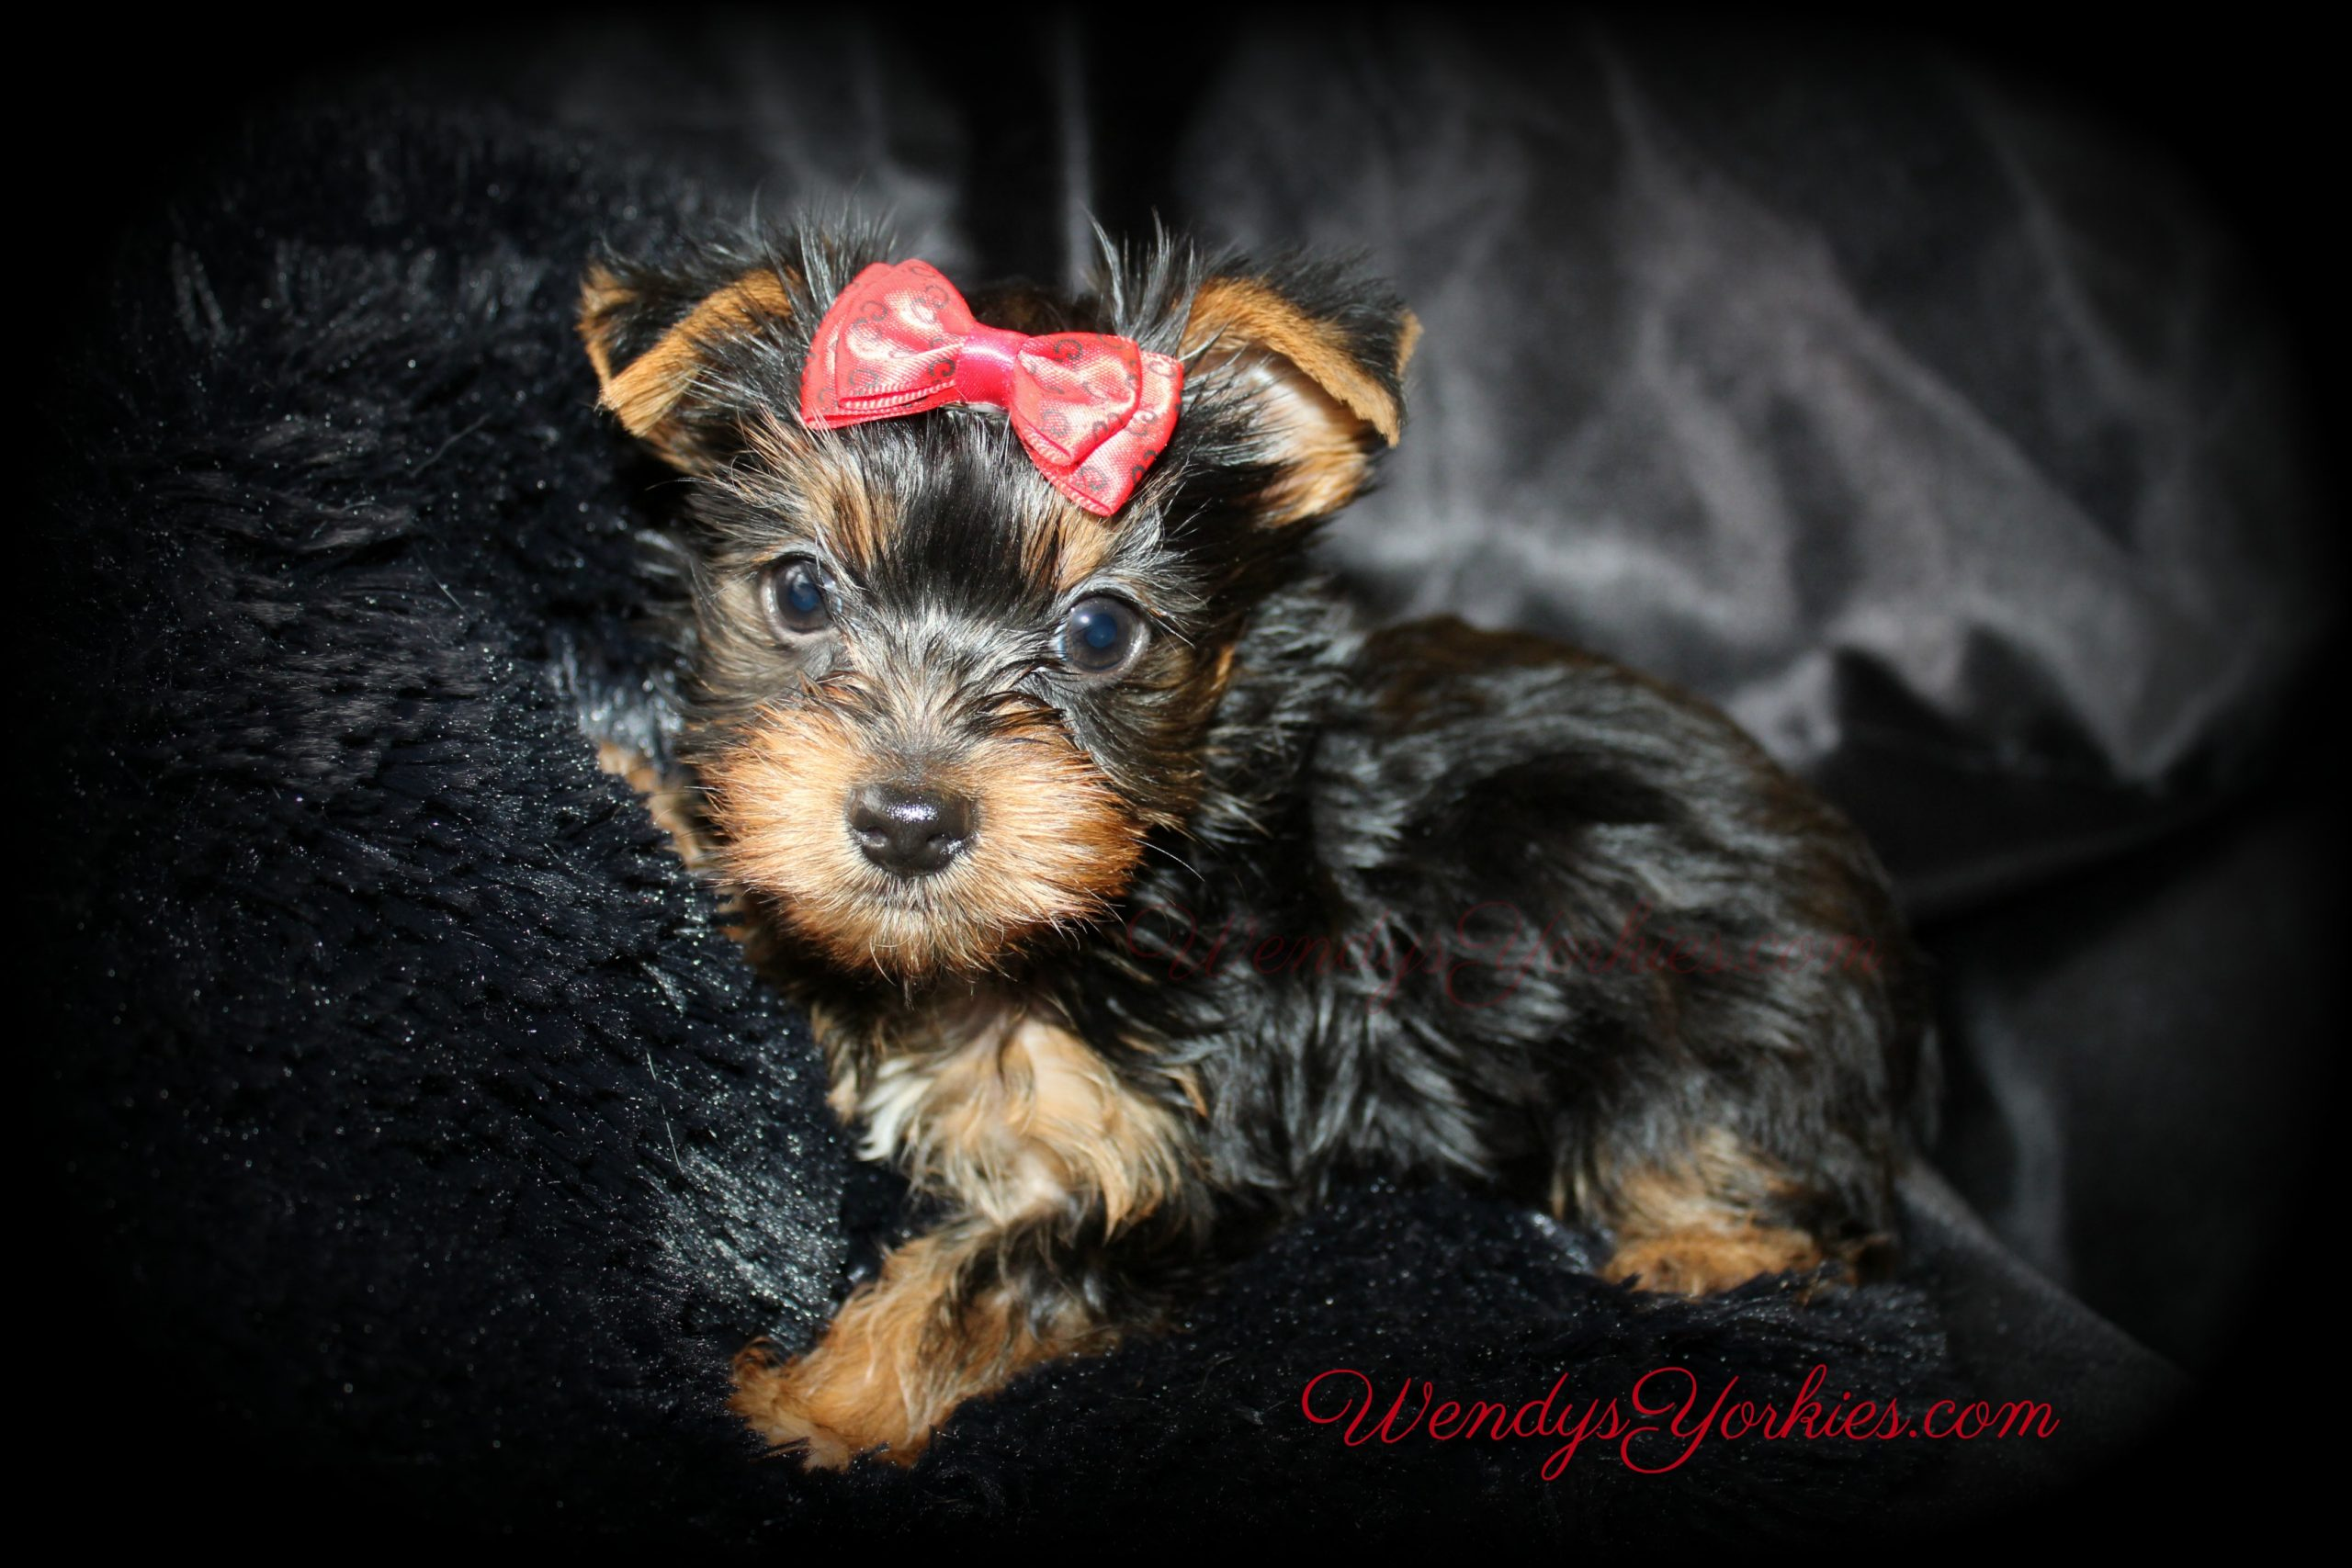 Teacup Male yorkie puppies for sale, Anna m1, WendysYorkies.com